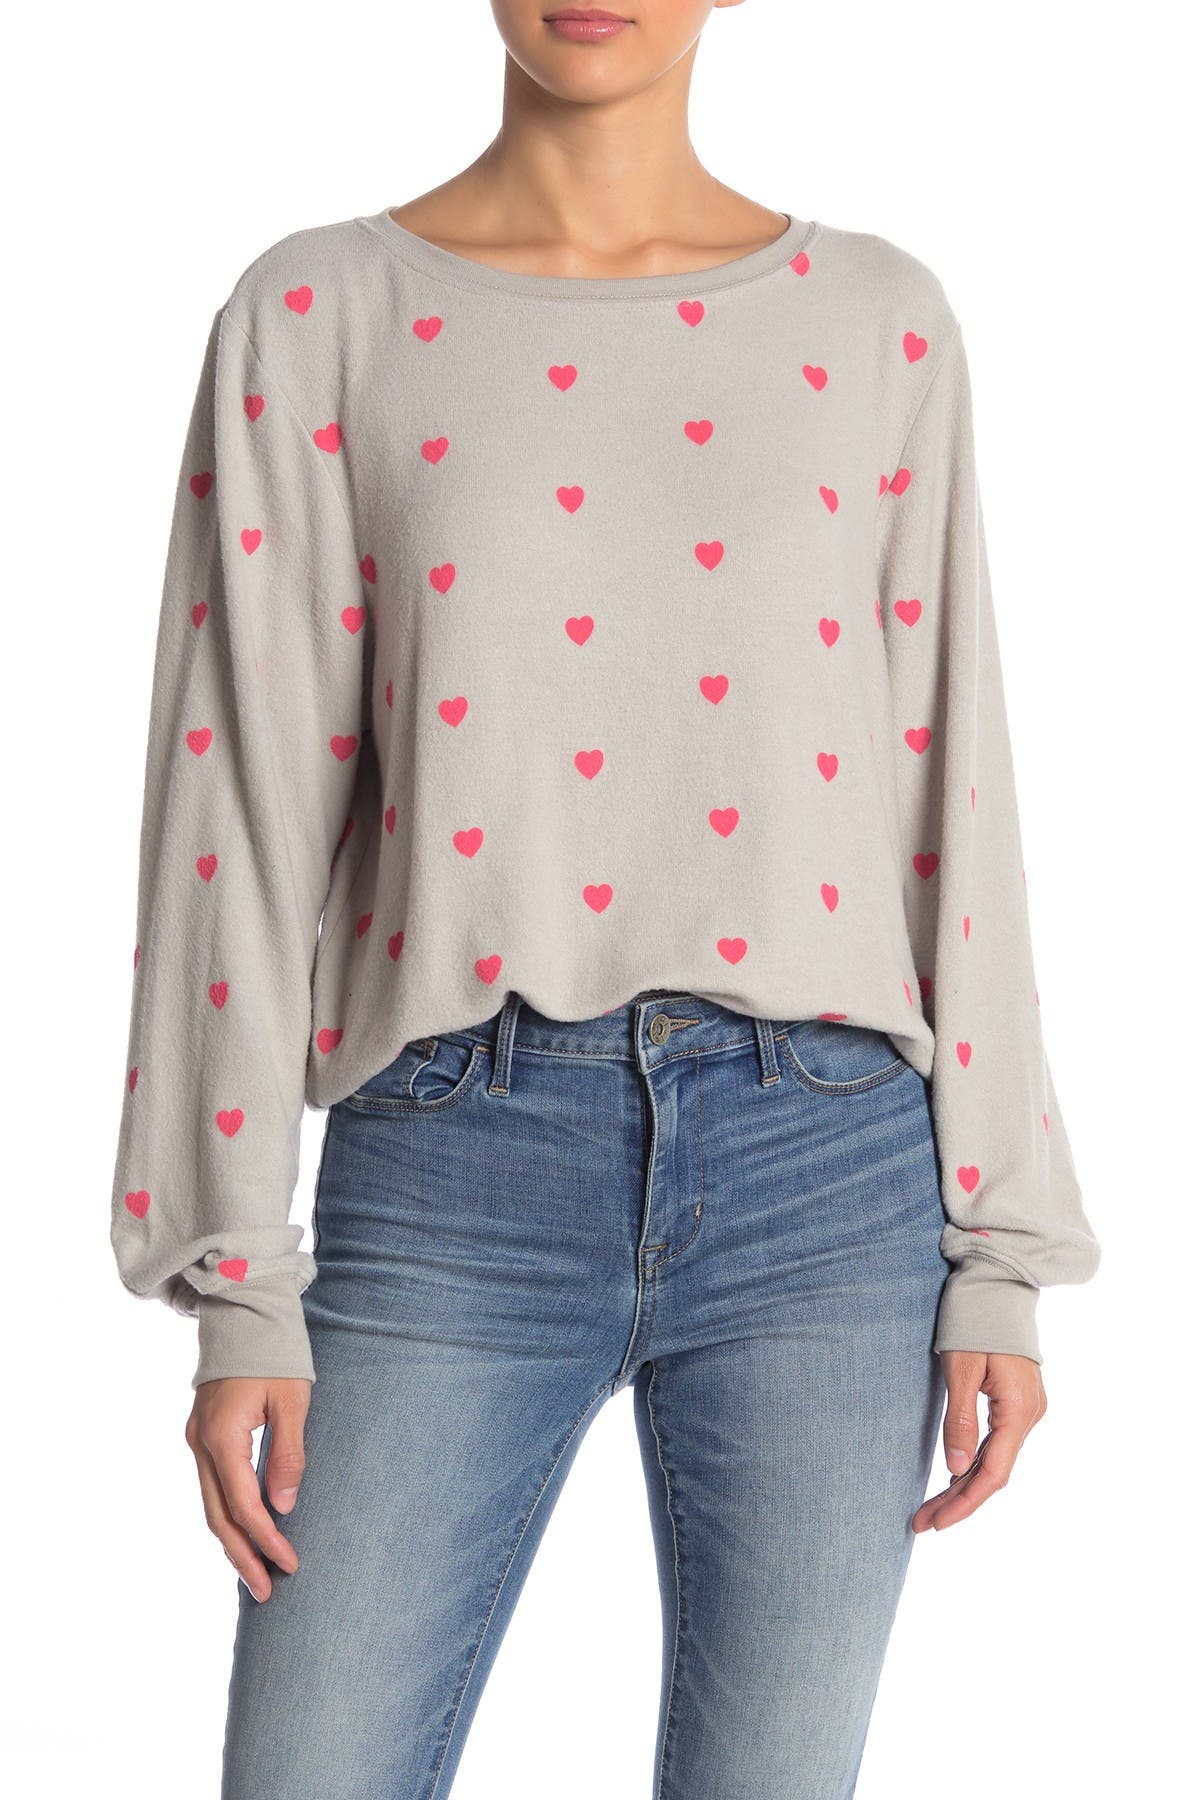 Image of WILDFOX Essential Hearts Graphic Pullover